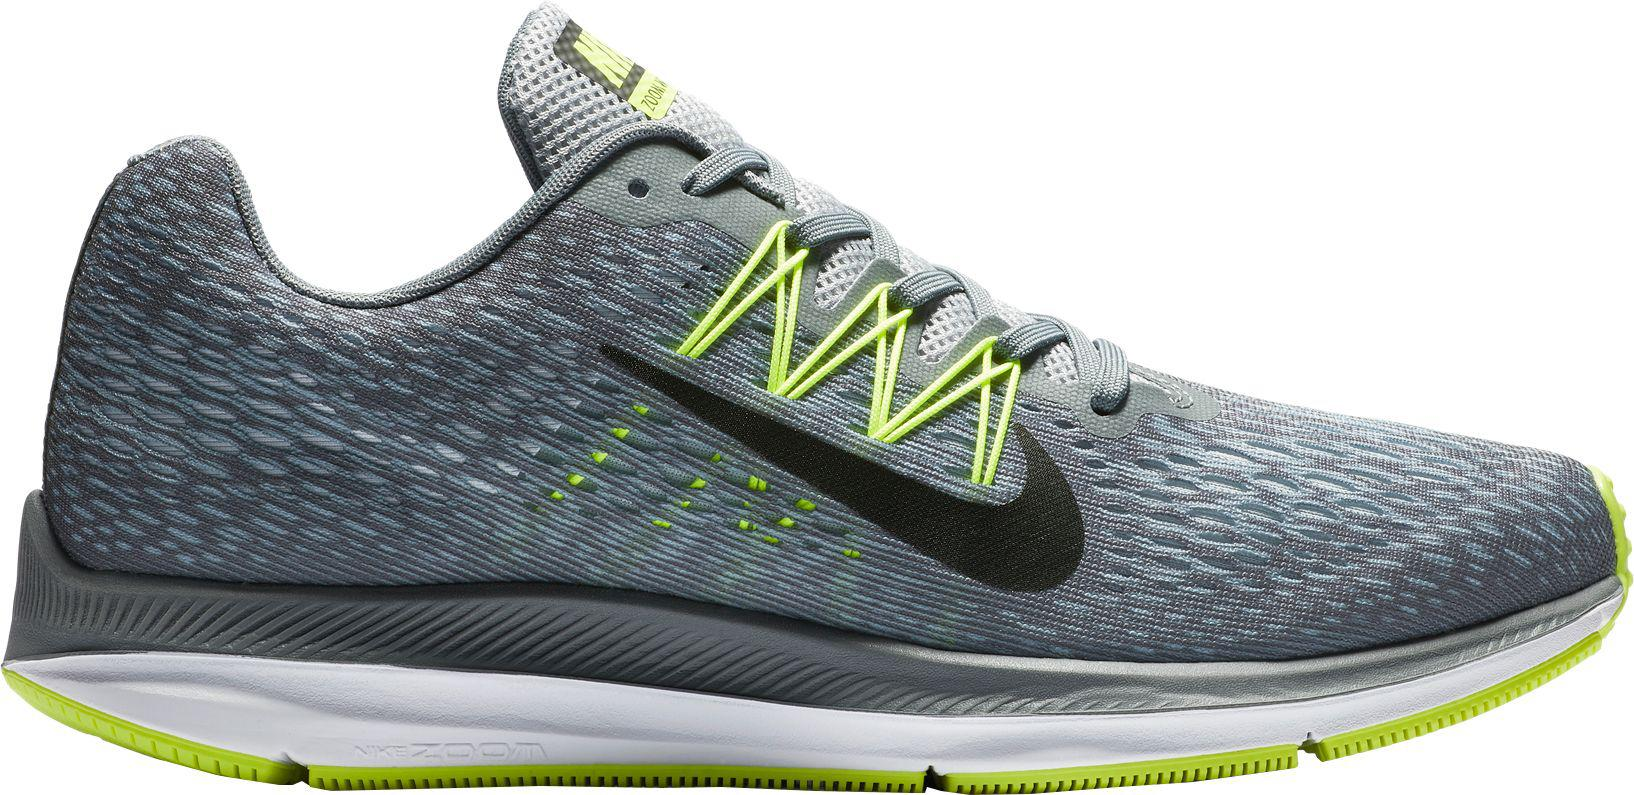 size 40 72213 2da62 Nike Air Zoom Winflo 5 Running Shoes in Gray for Men - Lyst